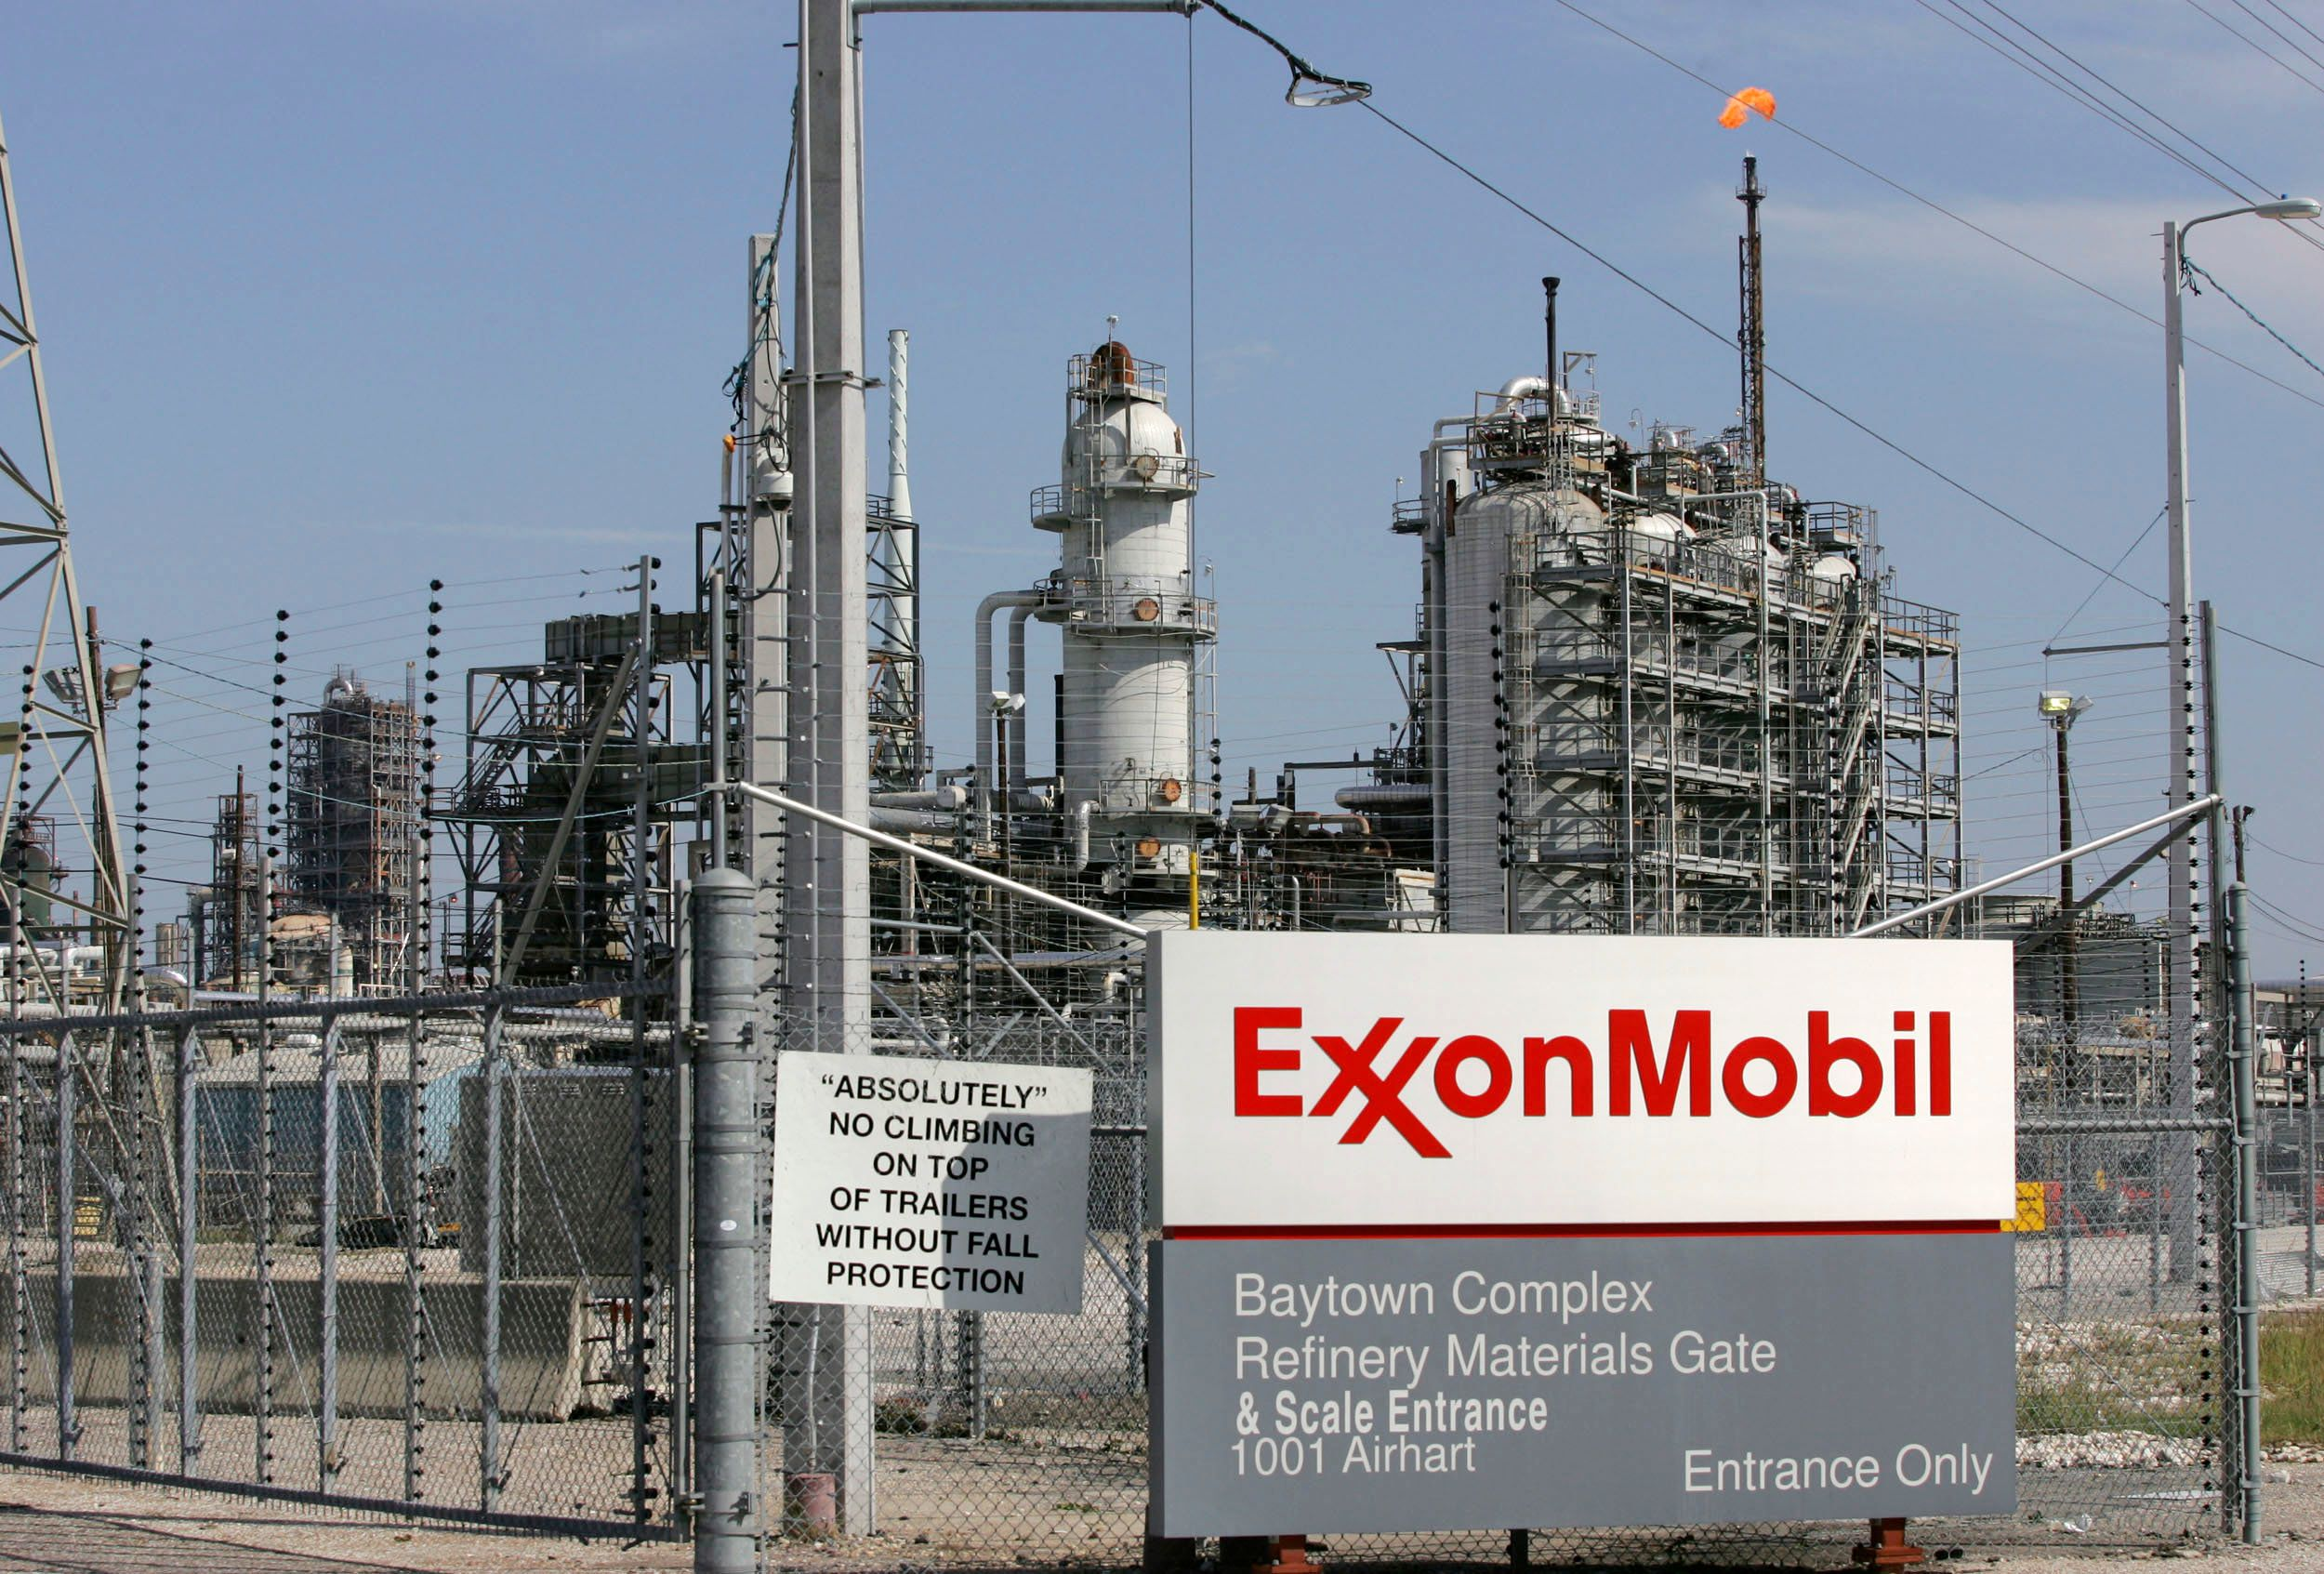 A view of the Exxon Mobil refinery in Baytown, Texas September 15, 2008. A big chunk of U.S. energy production shuttered by Hurricane Ike could recover quickly amid early indications the storm caused only minor to moderate damage to platforms and coastal refineries. REUTERS/Jessica Rinaldi (UNITED STATES)